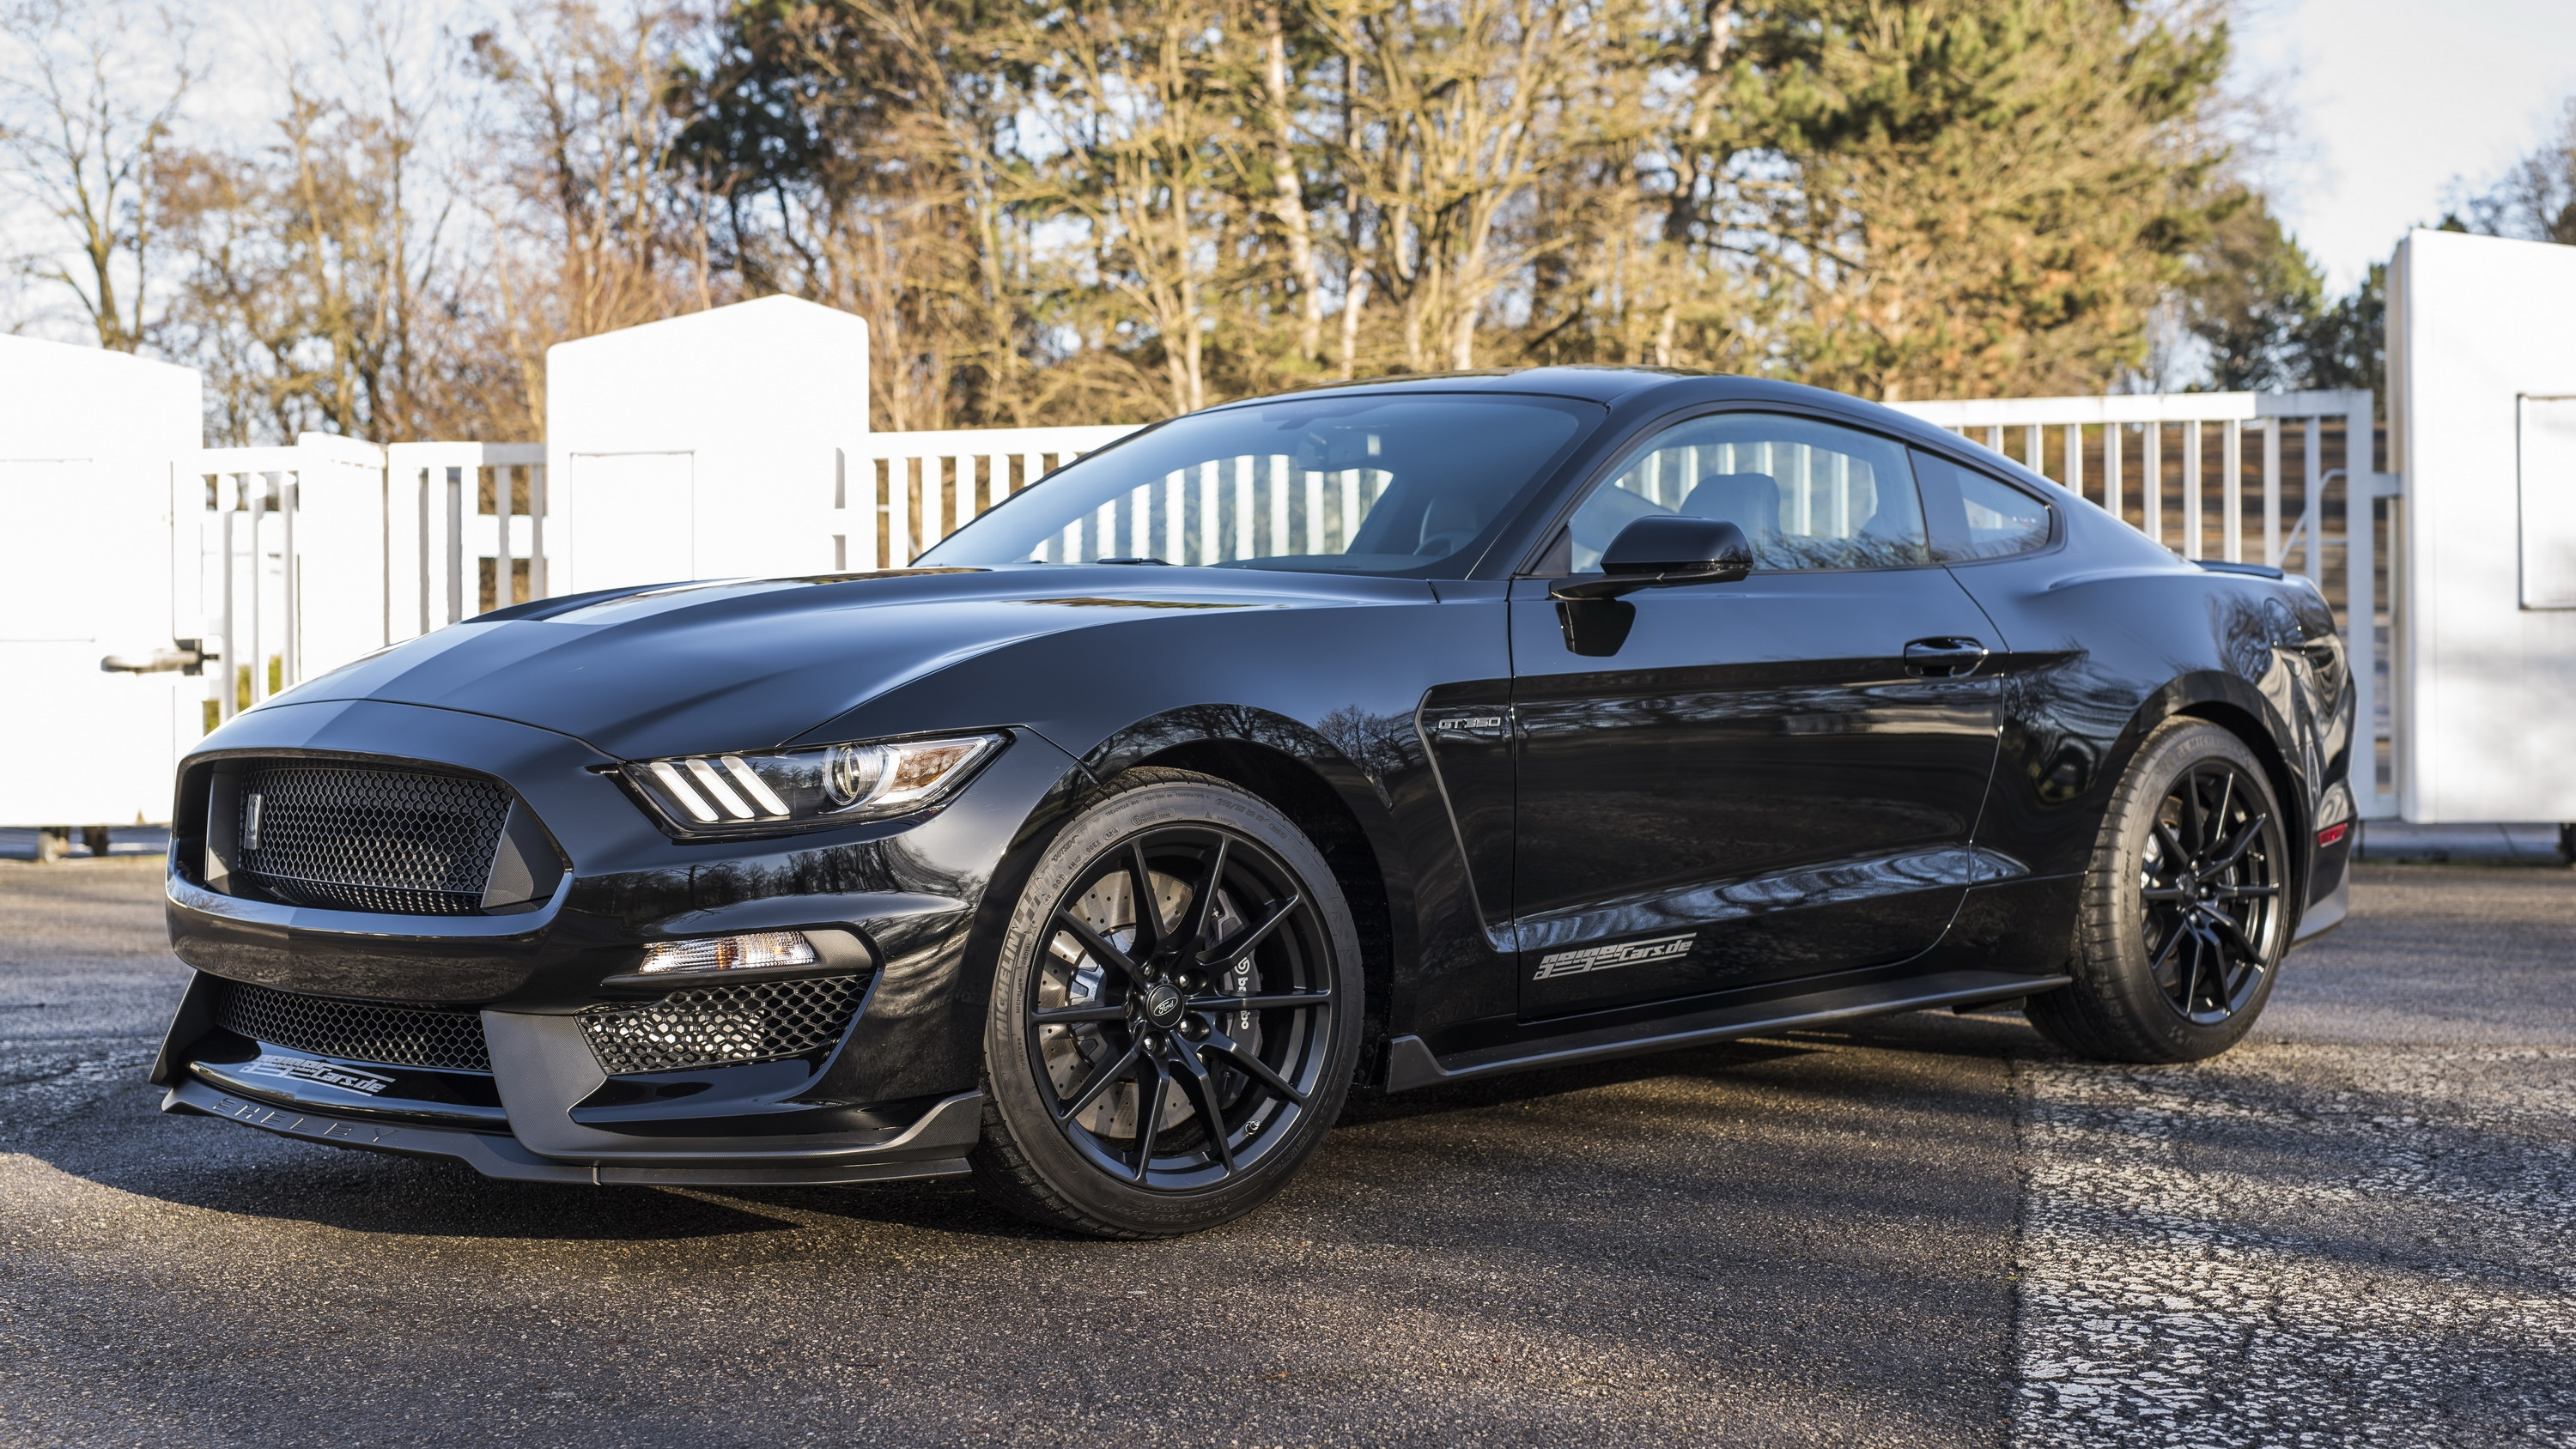 2016 geigercars to sell 2016 ford shelby gt350 mustang in europe news gallery top speed. Black Bedroom Furniture Sets. Home Design Ideas